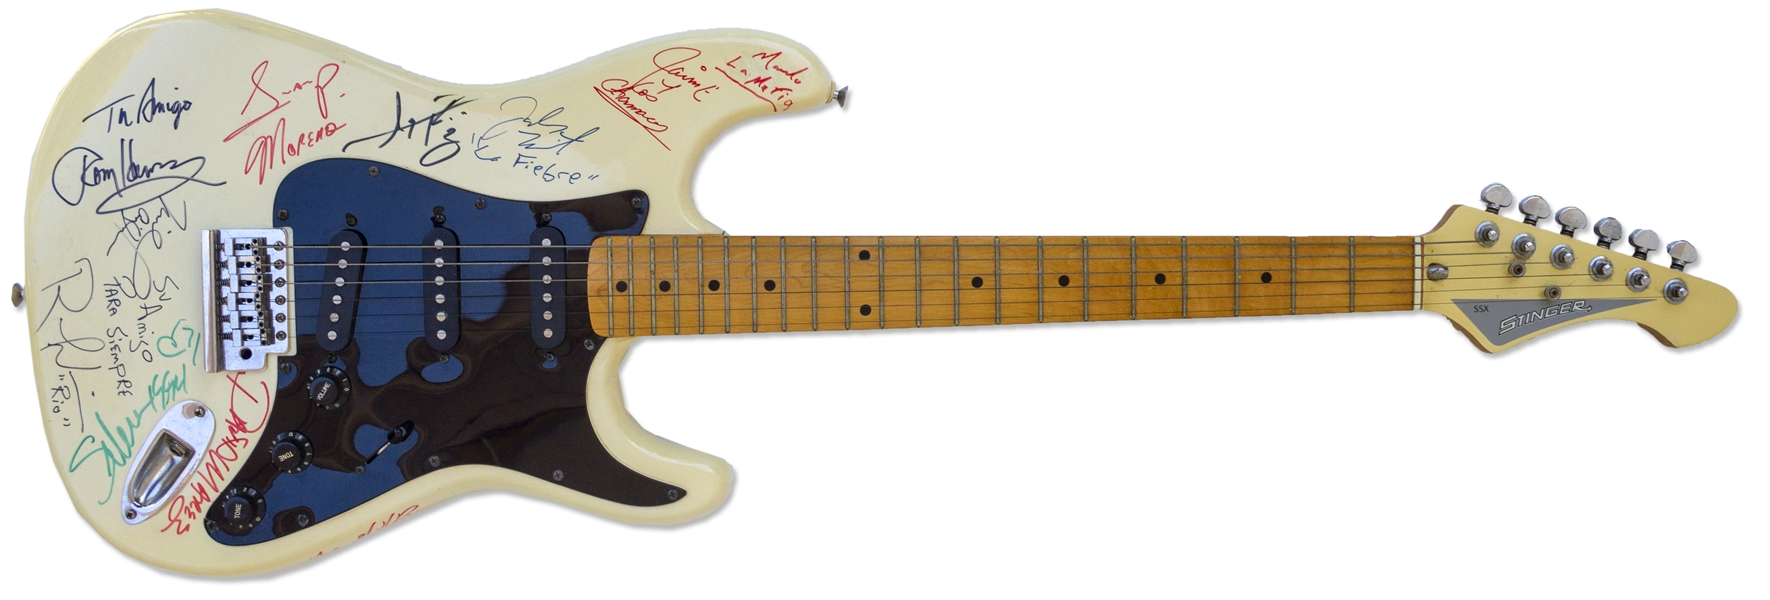 Selena Signed Electric Guitar From 1994 -- With Roger Epperson COA